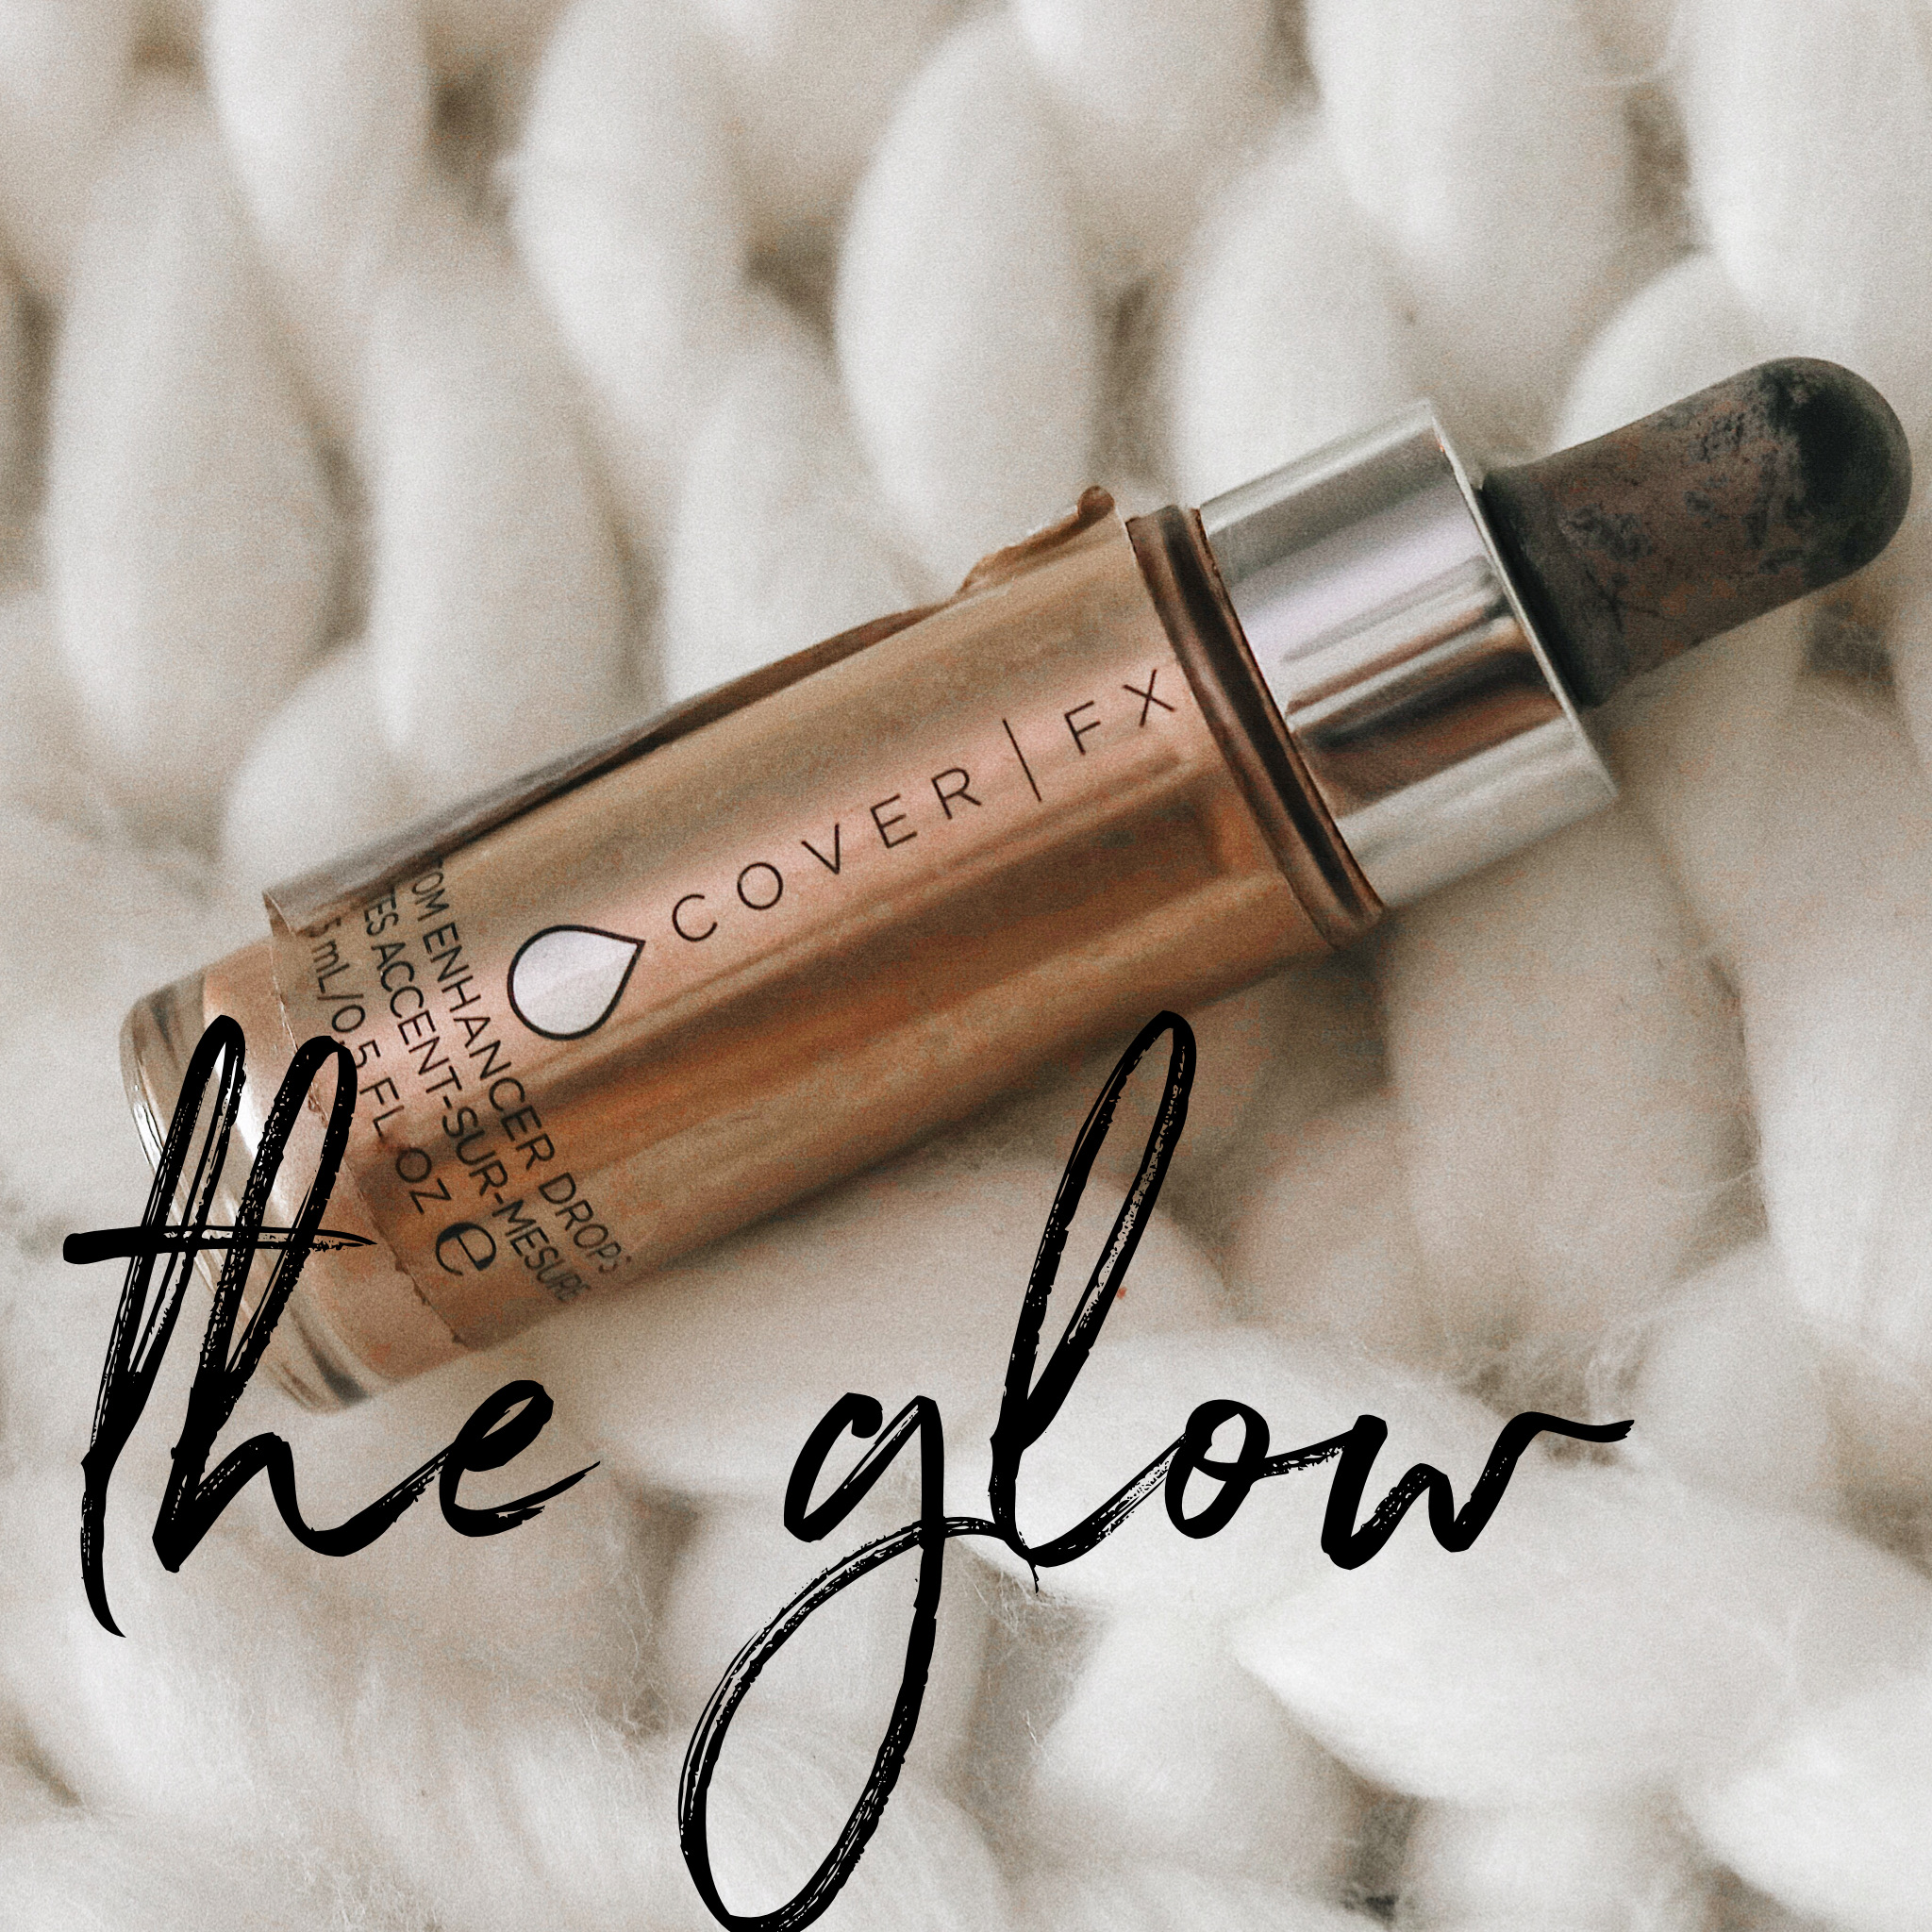 """THE HIGHLIGHTER     (your inner beach goddess will thank me later- shade: """"moonlight"""")    NO JOKE. This is the one item that I recommend to every single person. Yes, it's a bit pricier but it lasts me almost half a year.The shine it creates is unlike any other liquid highlighter & it's more """"dewy"""" looking rather than """"sparkly"""". I apply this on my cheek bones, middle of nose, and above my upper lip. You can thank me later.   Tip: Apply after foundation & concealer, but before your setting powder. I typically run the stick part directly on my face then blend with a dome brush. For events I add a little to my shoulders and collar bones! For extra glow, mix it in with your foundation!  GET IT  HERE"""